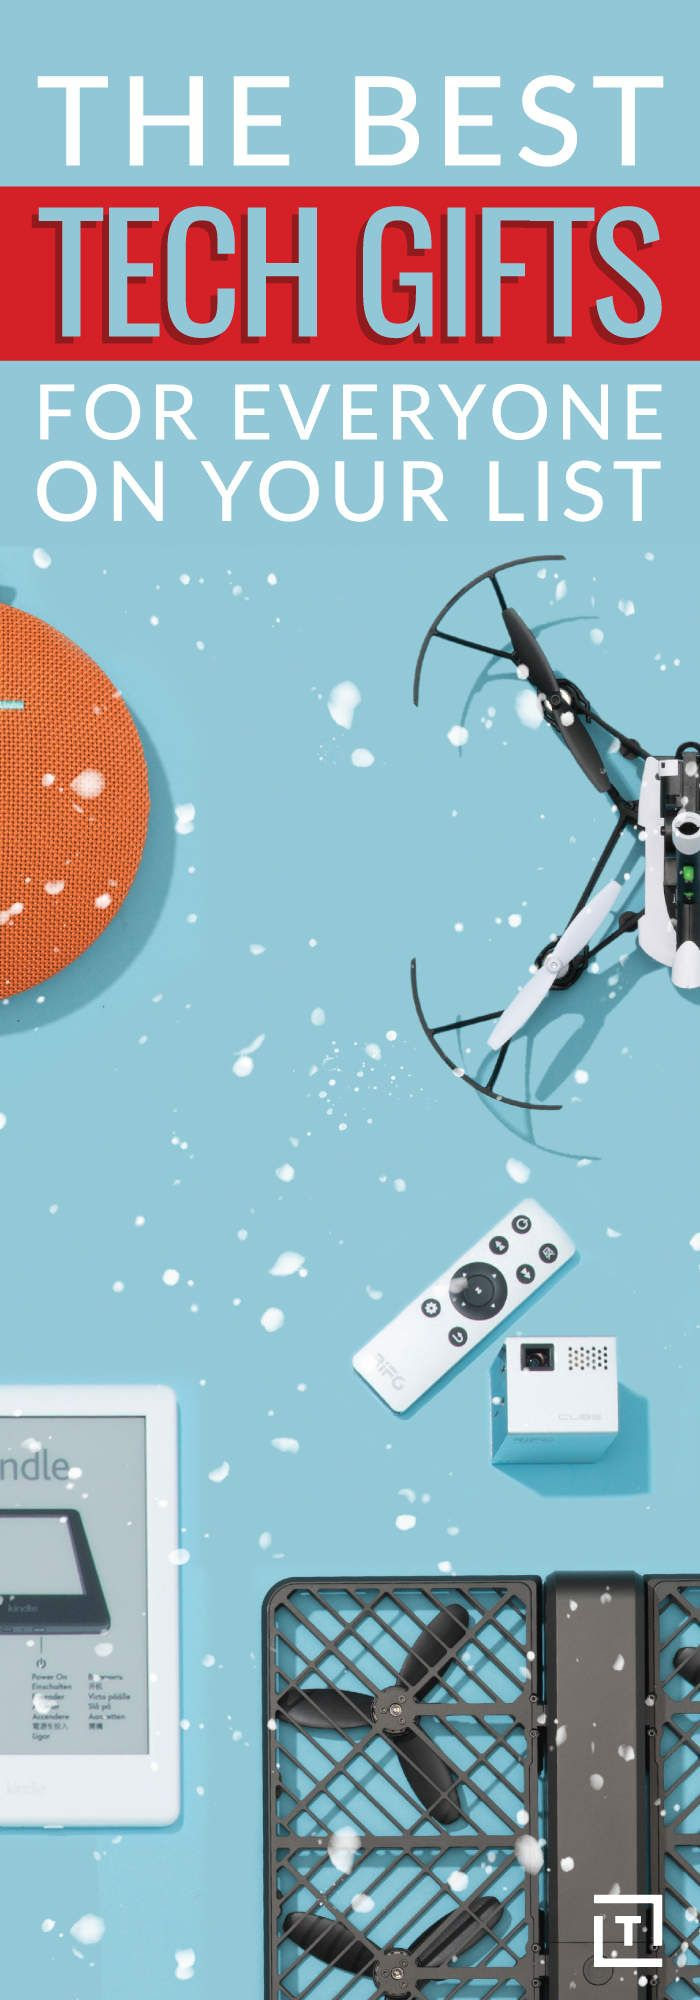 The Best Gadgets to Give Anyone on Your List This Year